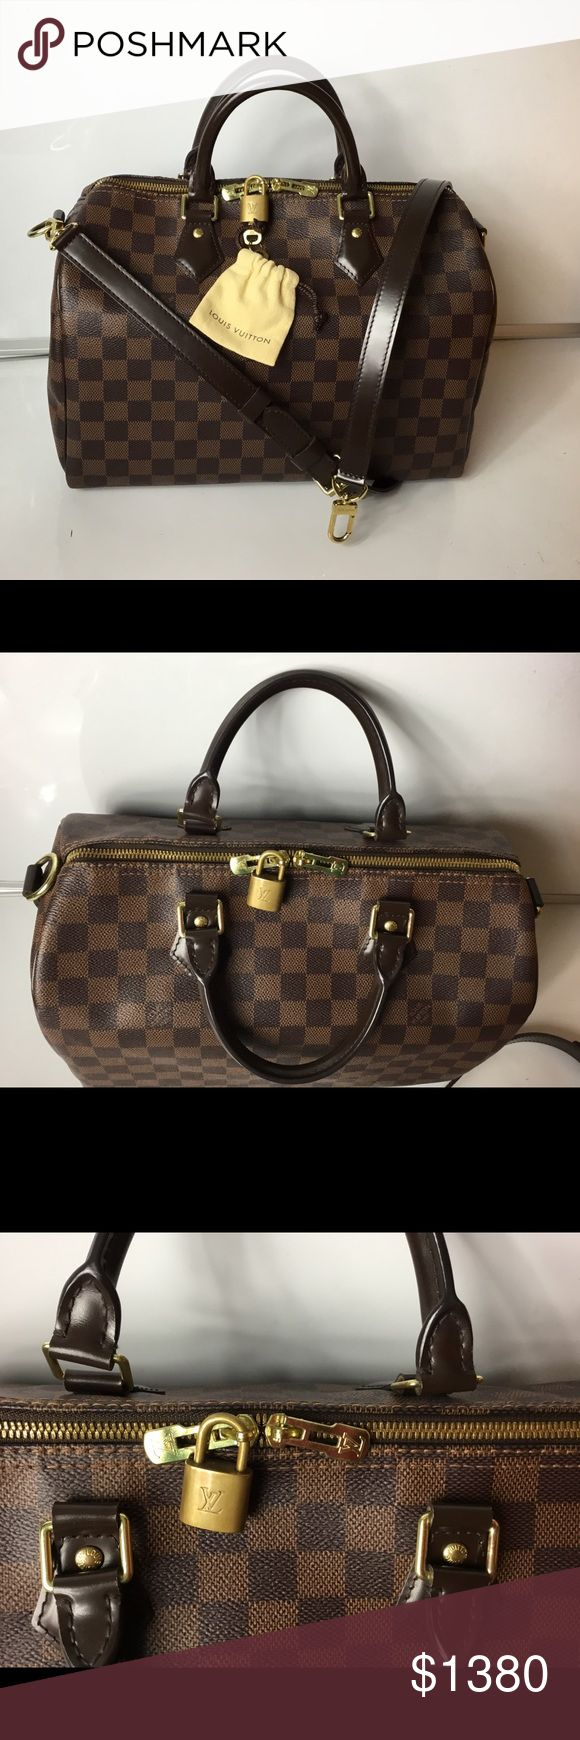 100% Authentic Louis Vuitton Speedy 30 Bandouliere 100% Authentic Louis Vuitton Damier Ebene Speedy 30 Bandouliere with Receipt, Padlock, 2 Key and Dust Bag Included with Dust Bag, PadLock, Key and Box. Pre-Owned Bag in excellent used condition No rip, no tears on the canvas. Very clean inside. No bad odor/ No smell. Leather and Handle have marks, and sign of usage. Hardware has surface scratches. DATE CODE SD1115 ( 11 weeks of 2015 ) MADE IN FRANCE  Please check all the pictures. -In order…